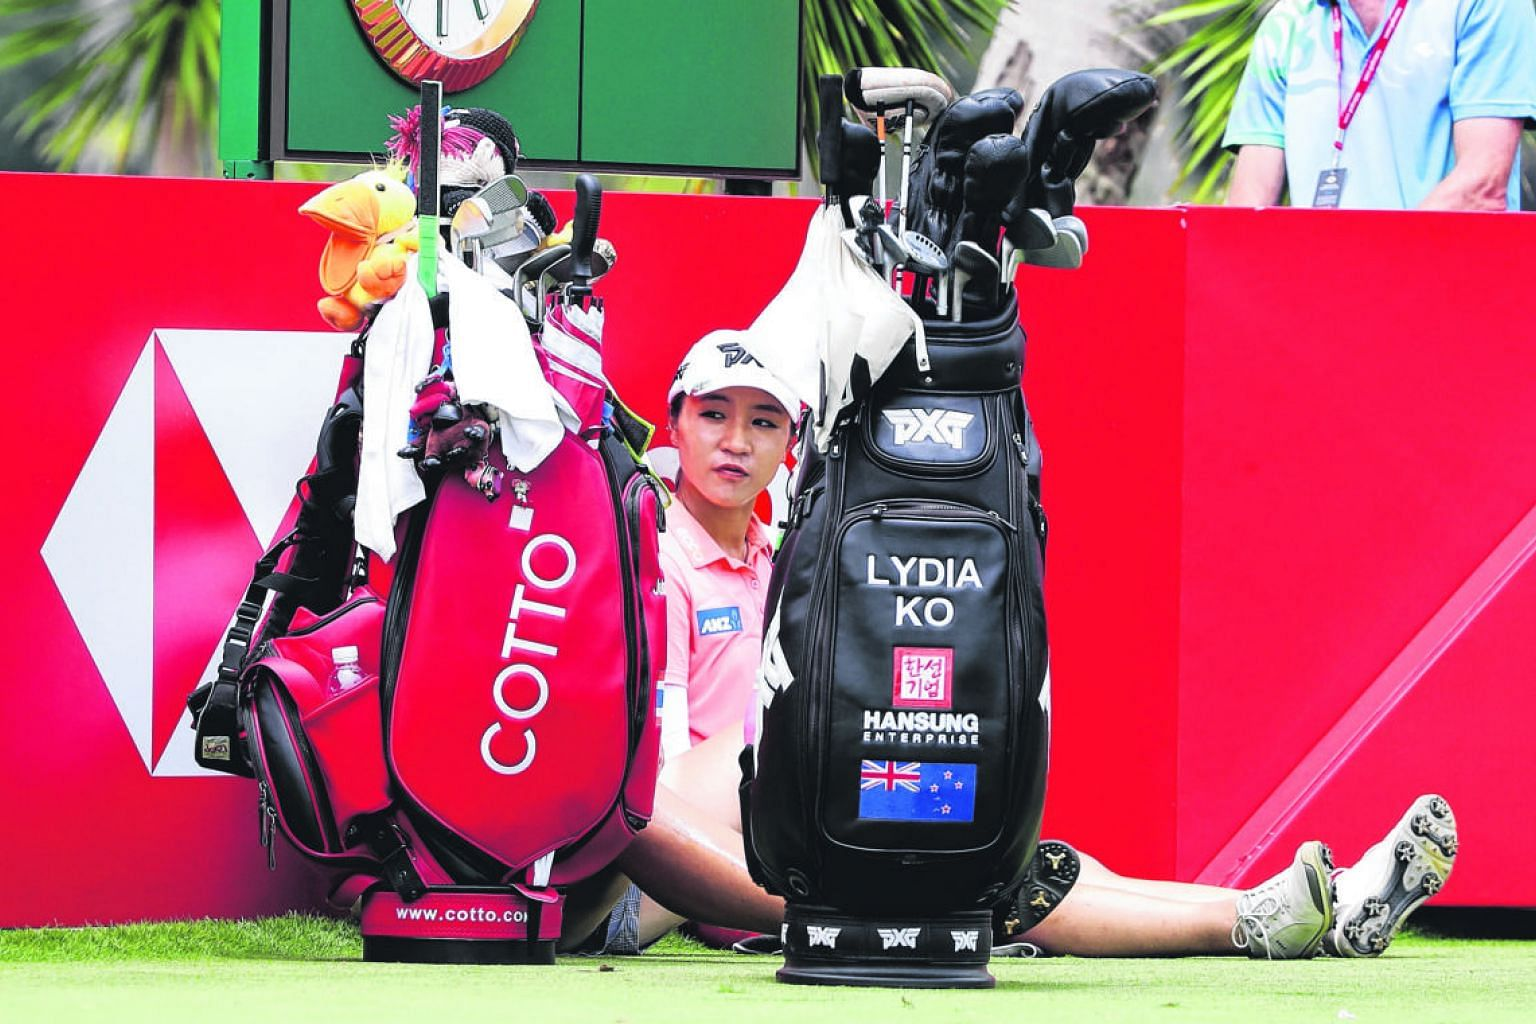 Former World No. 1 Lydia Ko resting at the 17th tee. She hit only nine greens yesterday as she finished in joint 27th place with a 71.